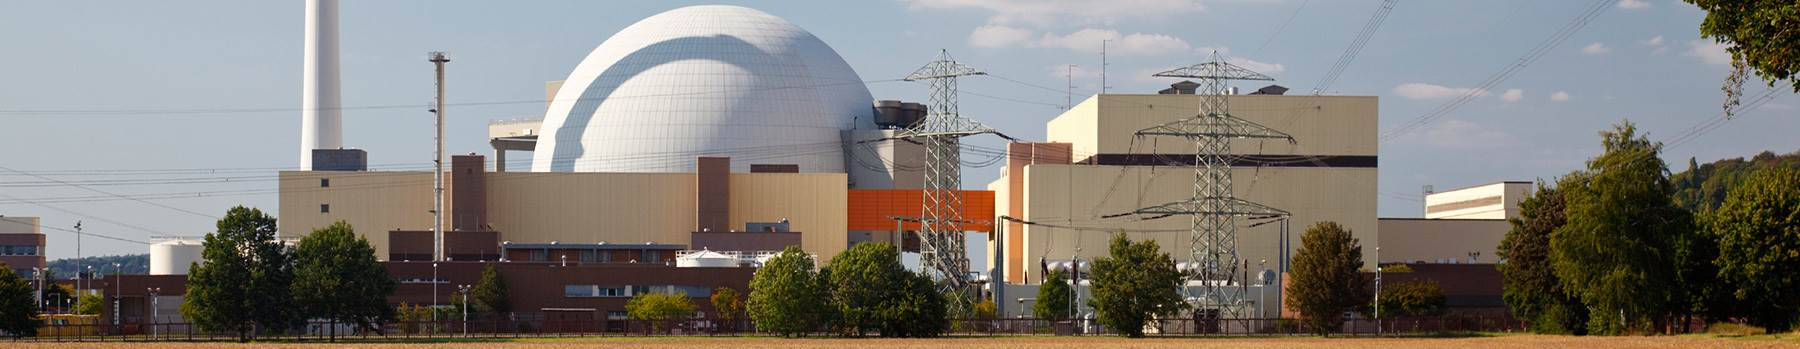 hero_AutoPipe-Nuclear_iSt_11648786_L_nuclear-reactor-building